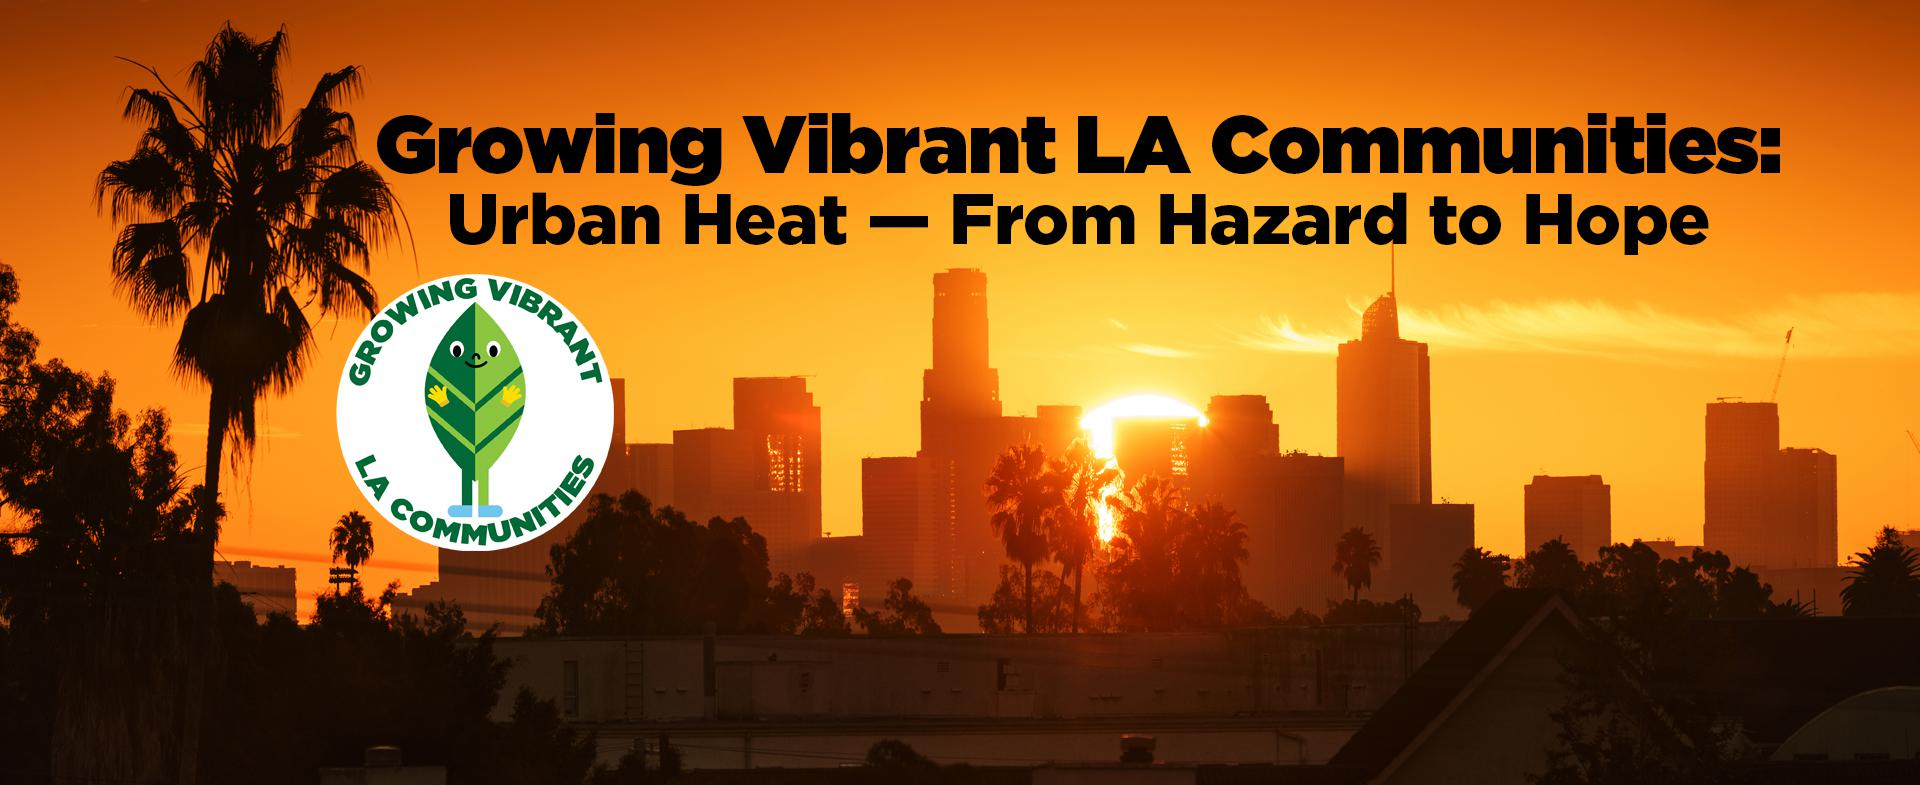 Growing Vibrant LA Communities